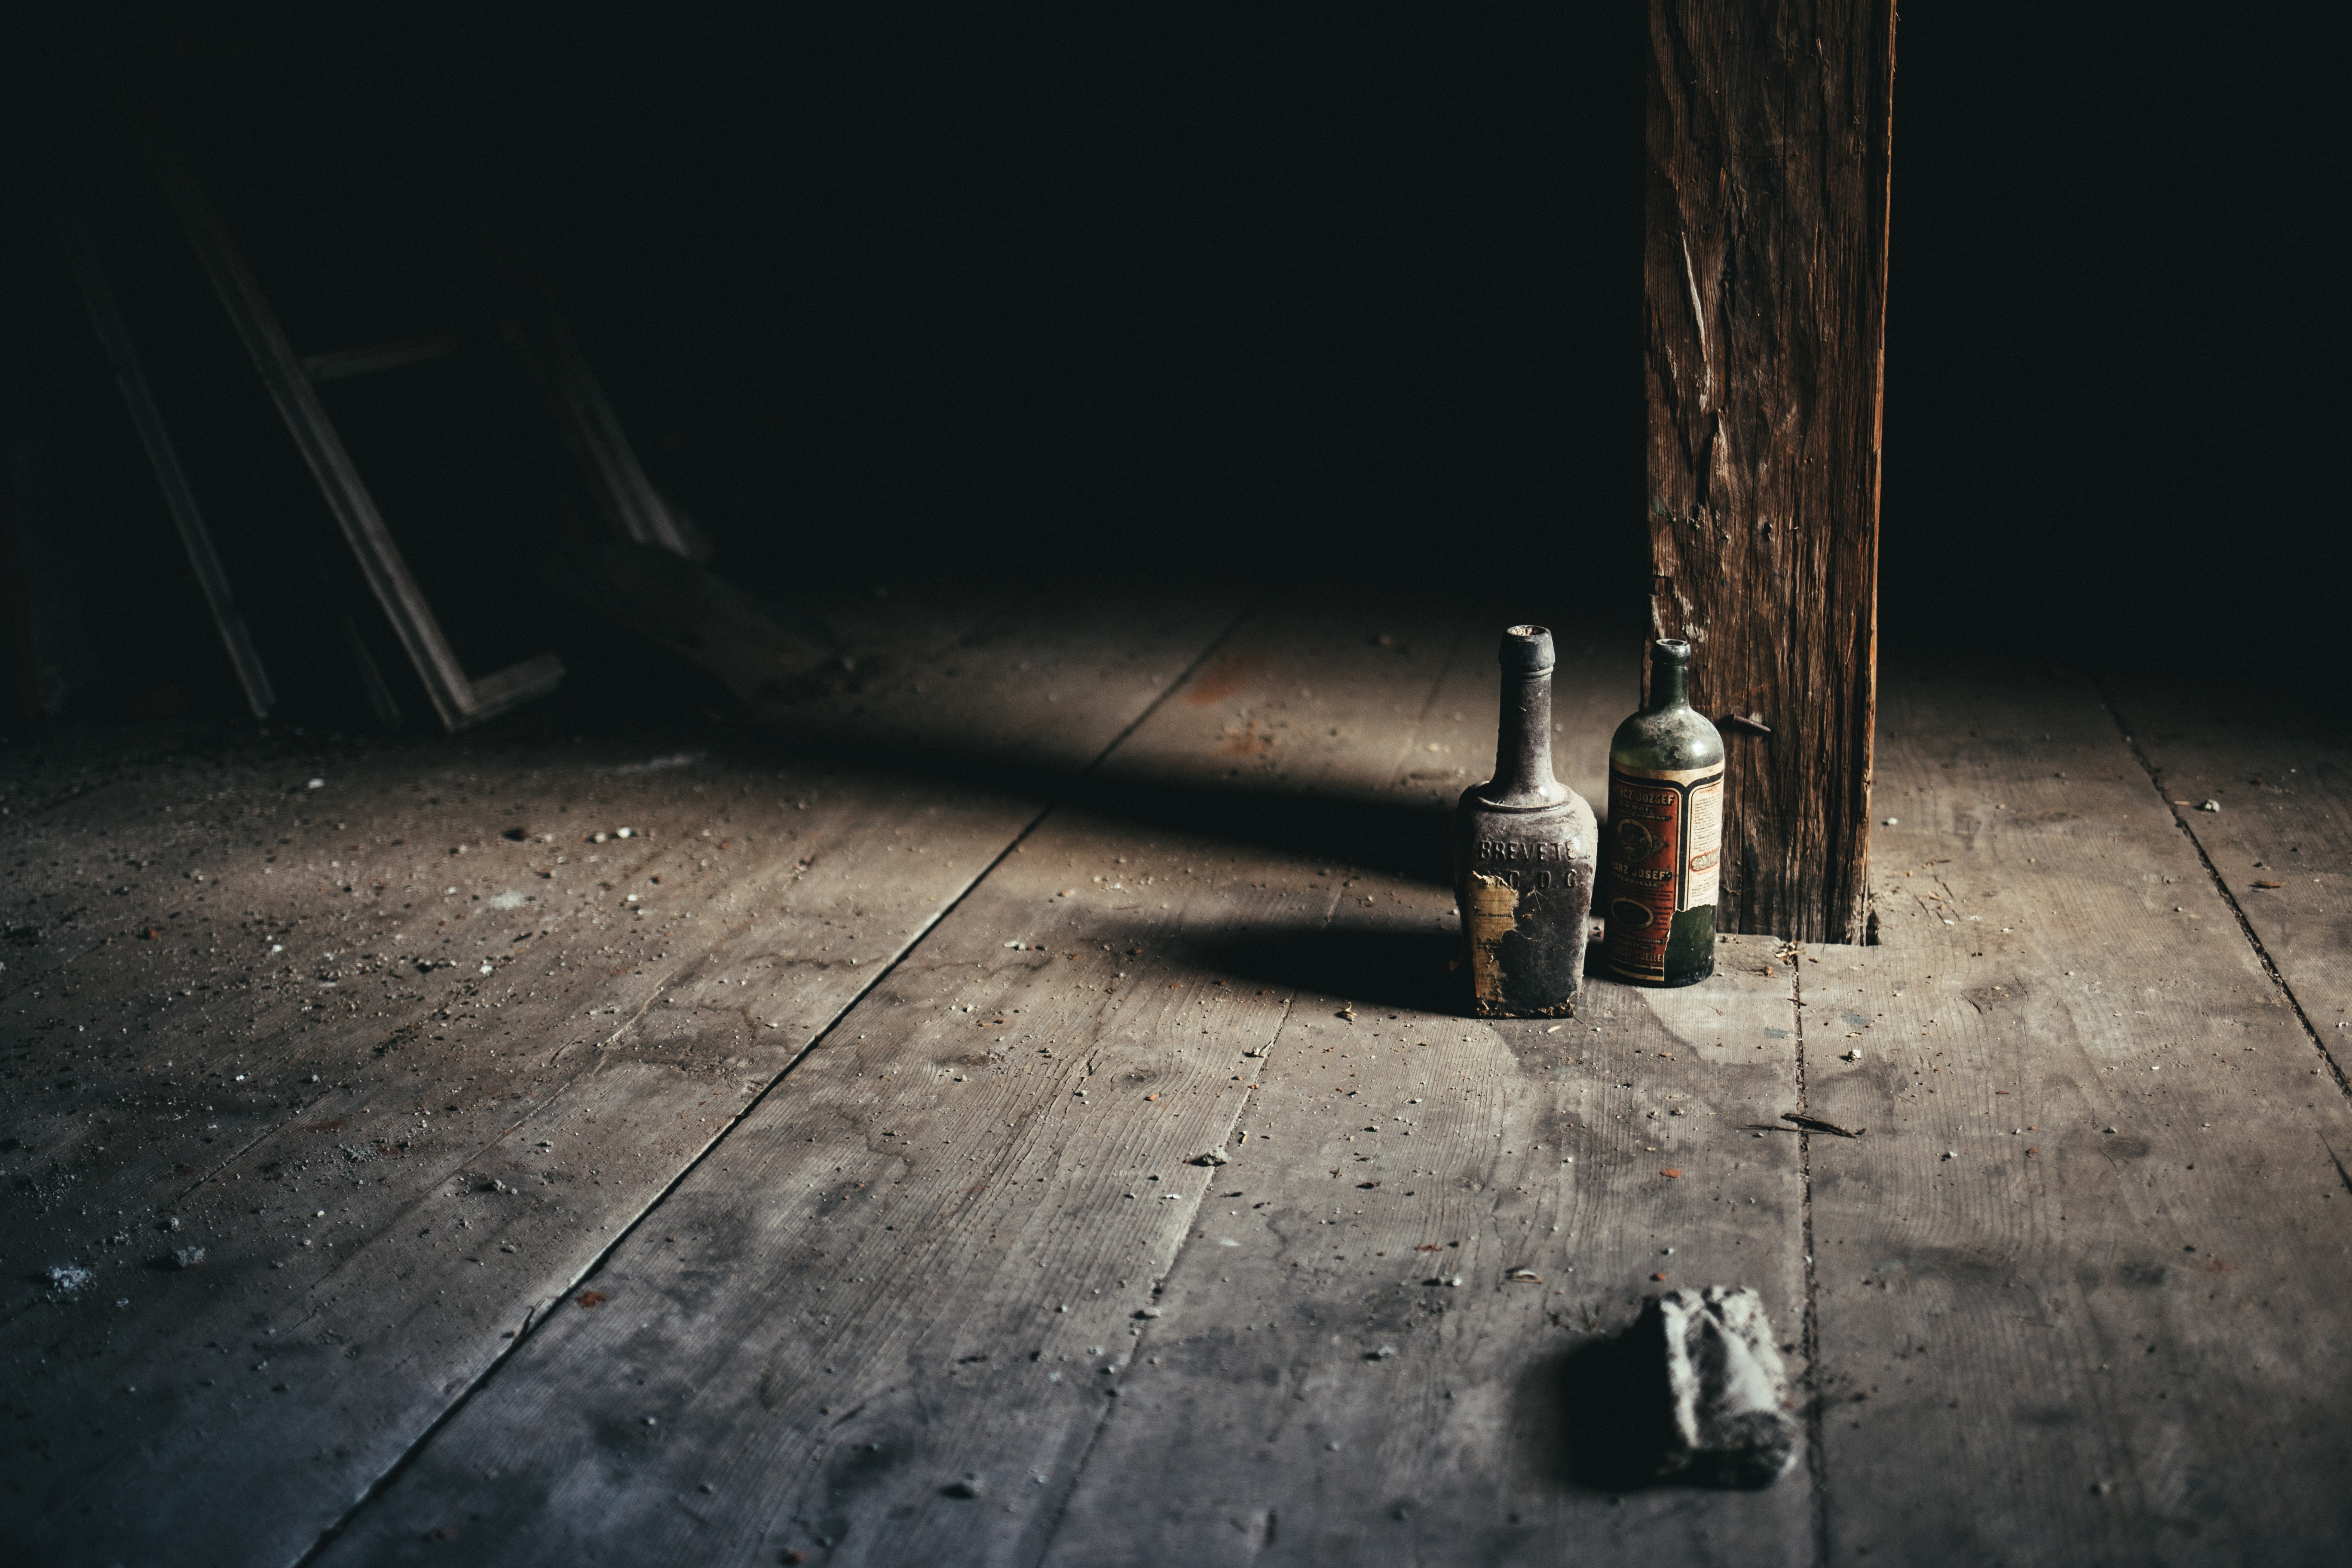 Two old bottles standing on a dusty cabin floor under a wooden post